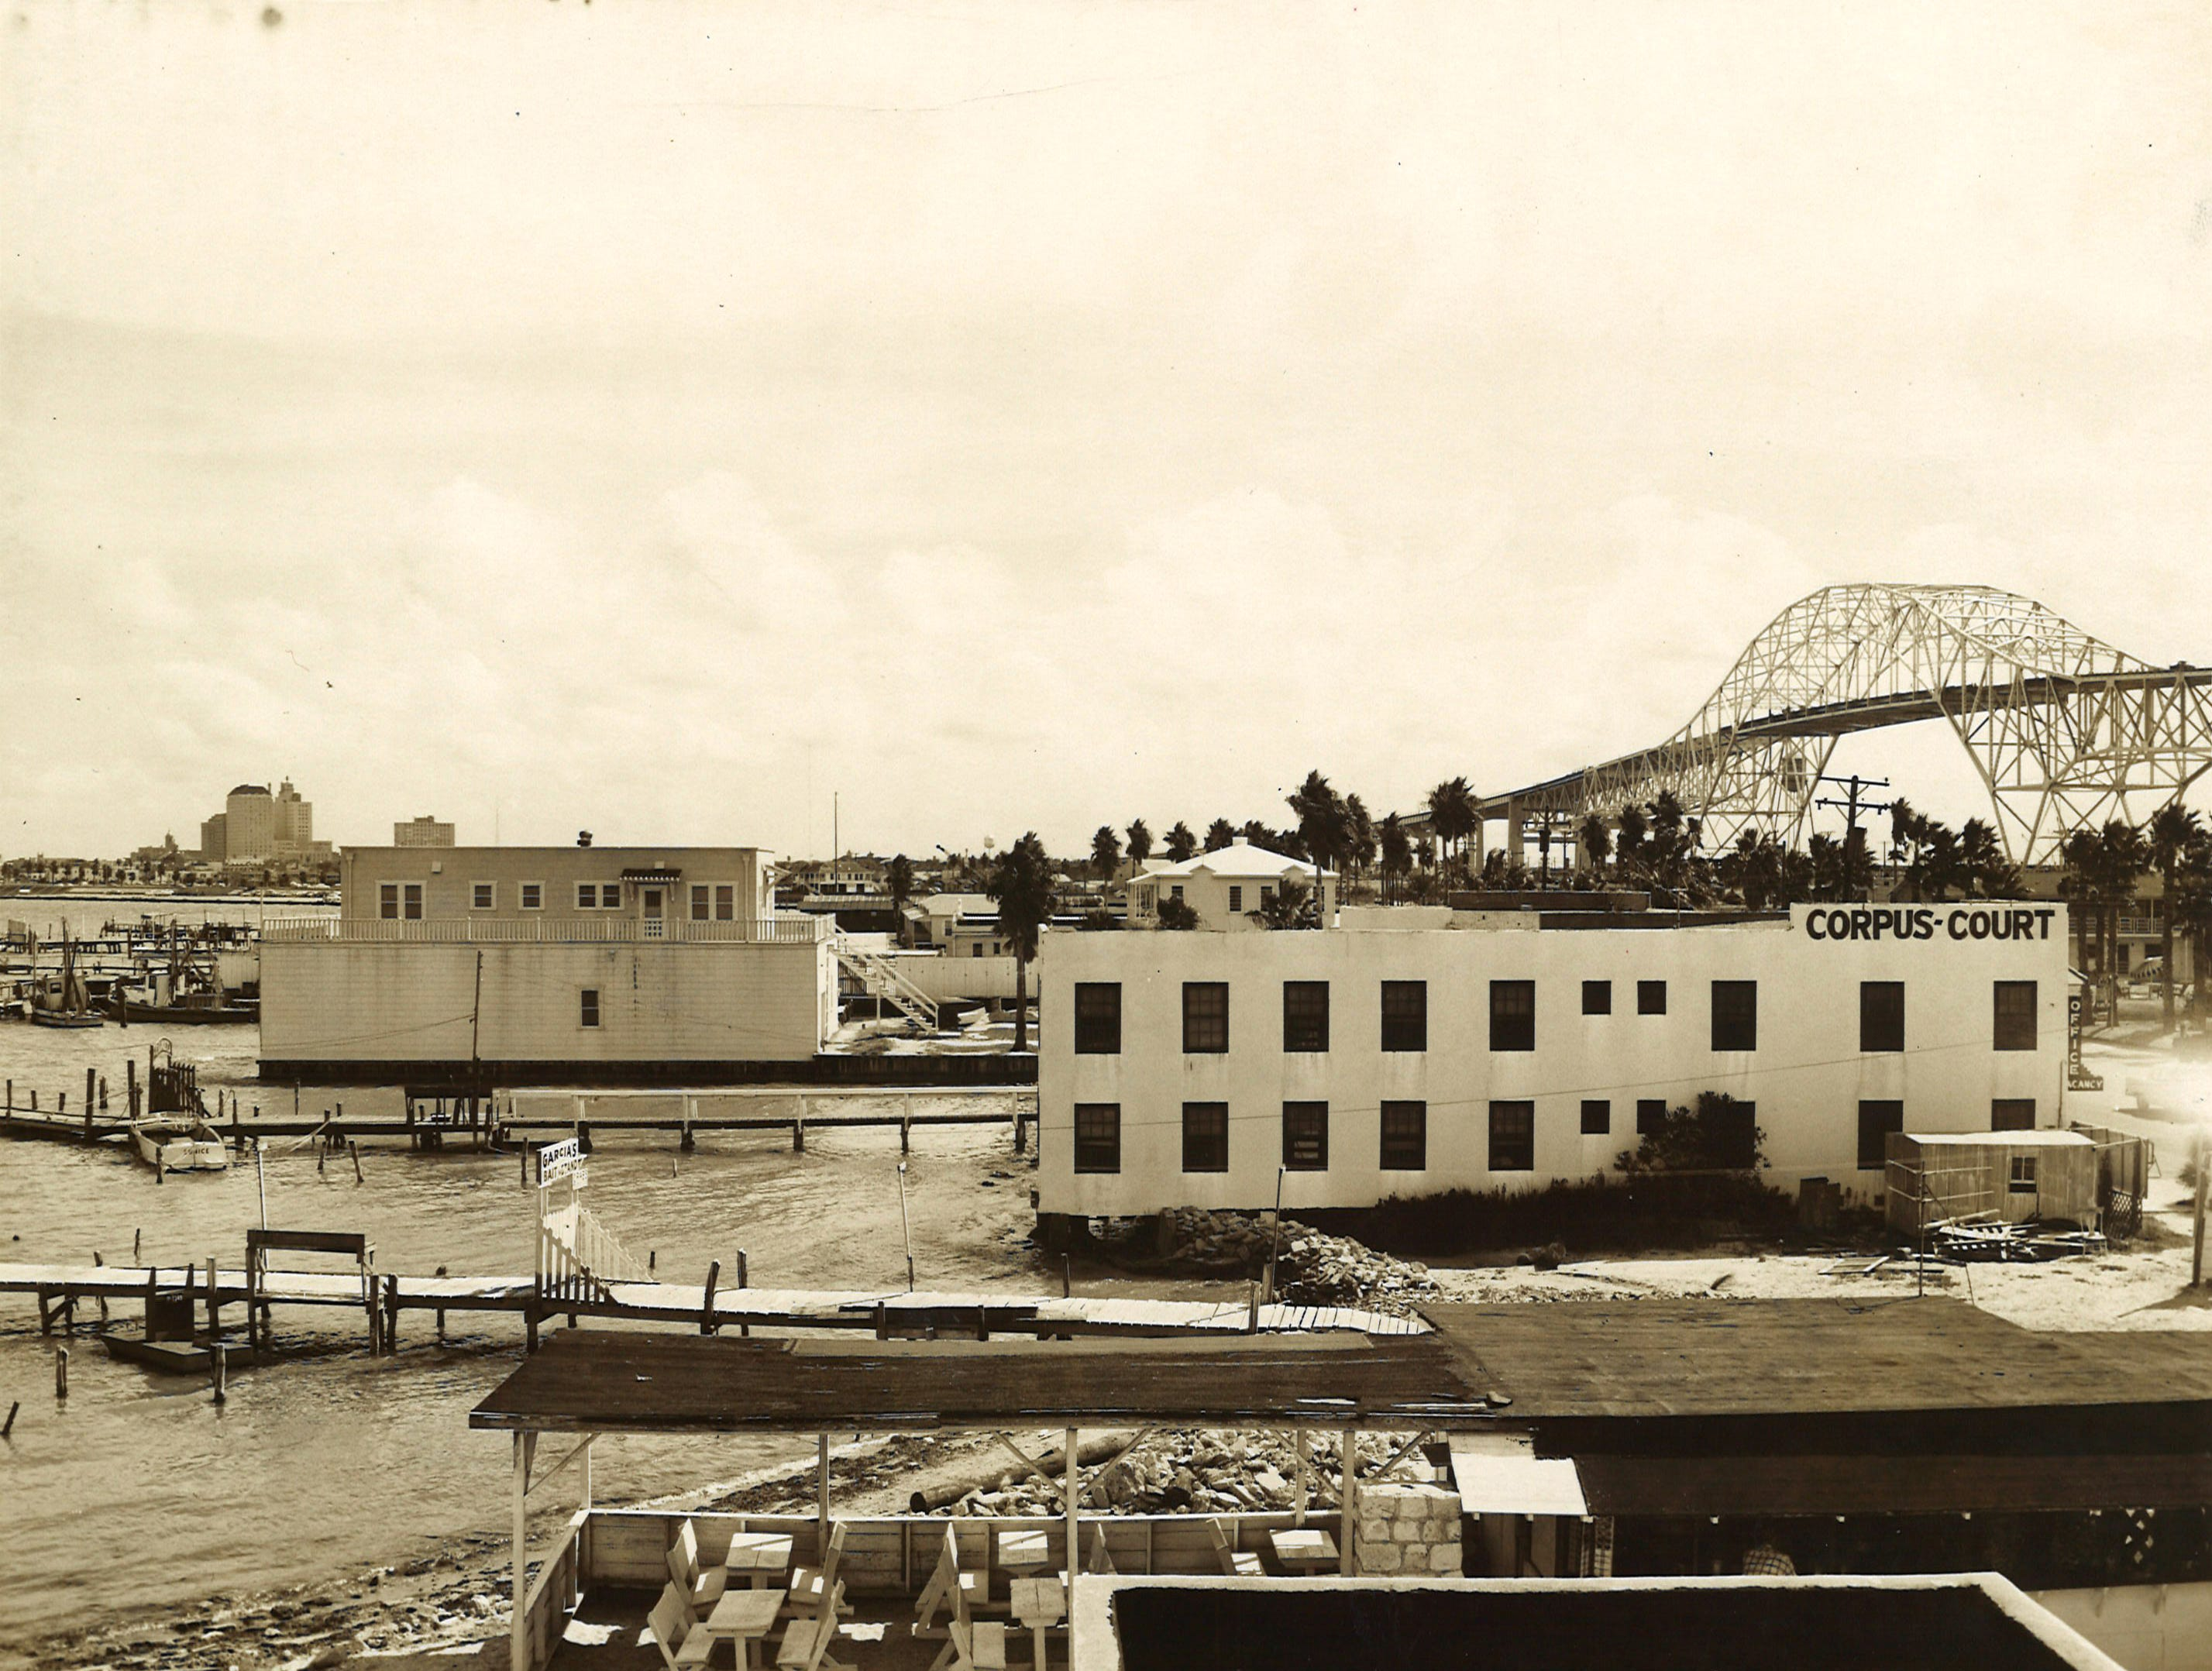 Looking toward the newly completed Harbor Bridge in Corpus Christi from North Beach in September 1959. The street in front of Corpus Court is North Shoreline.